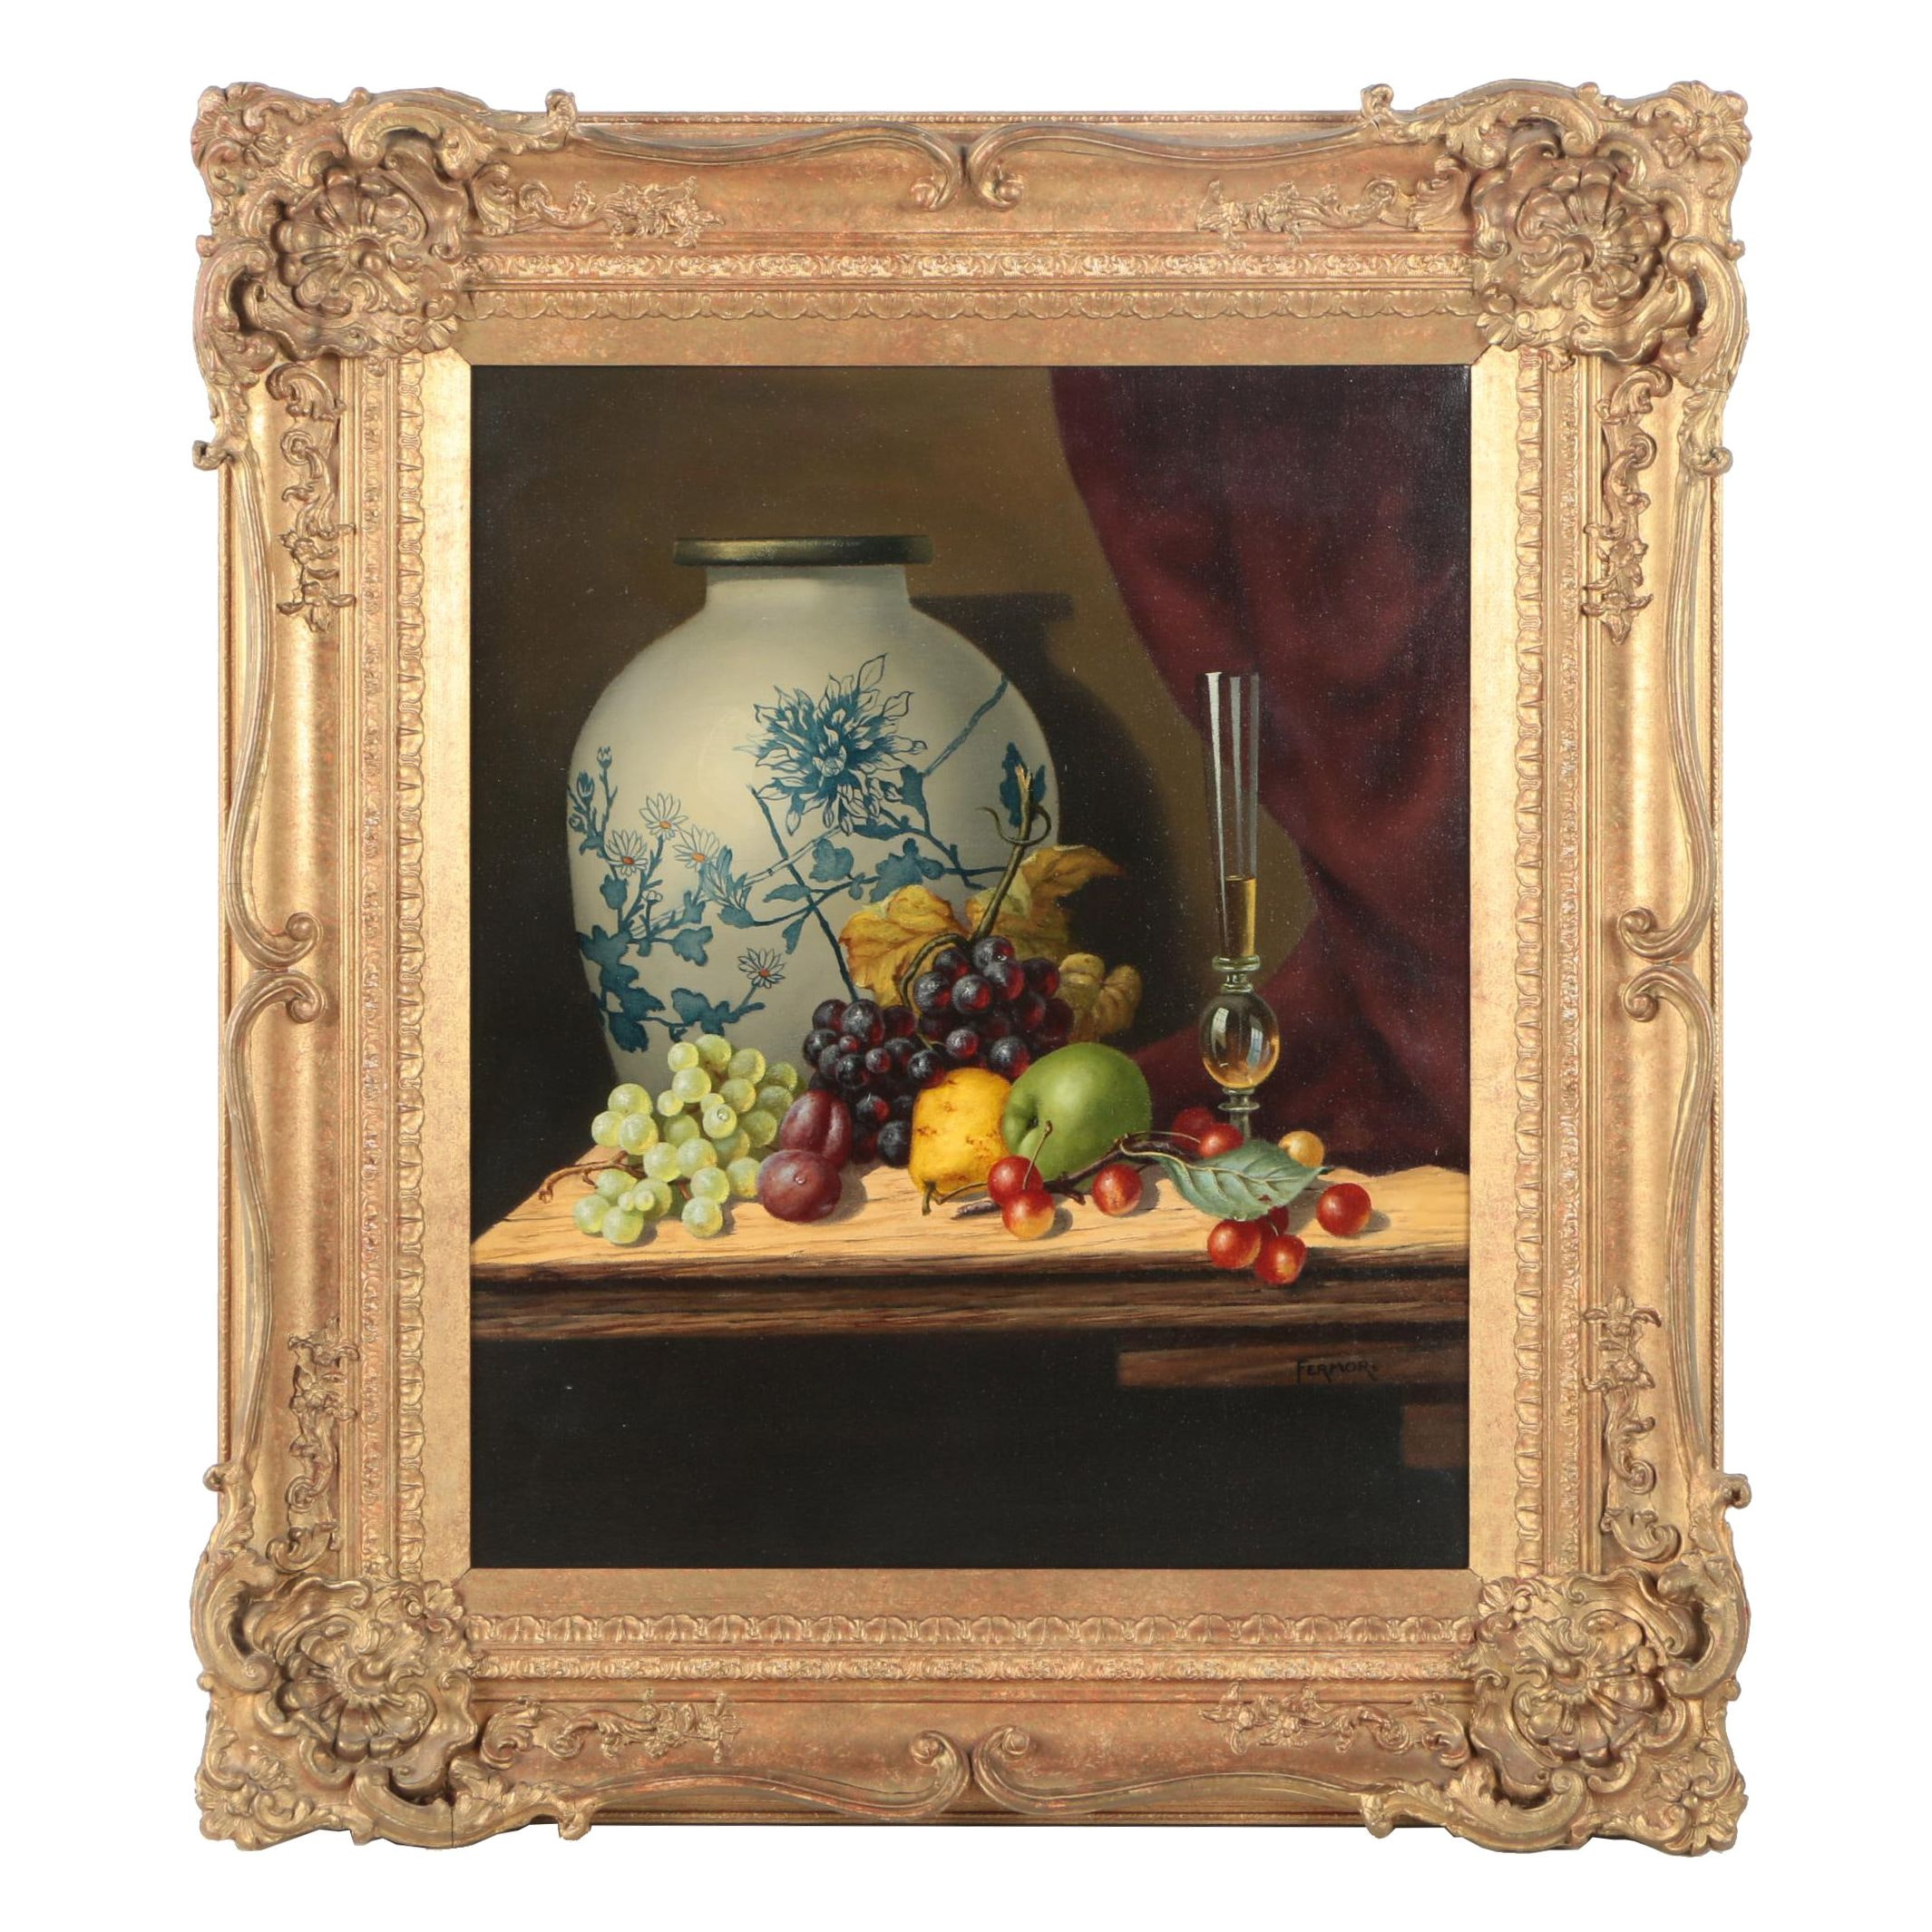 Fermor Oil Still-Life Painting with Fruit, Wine and Porcelain